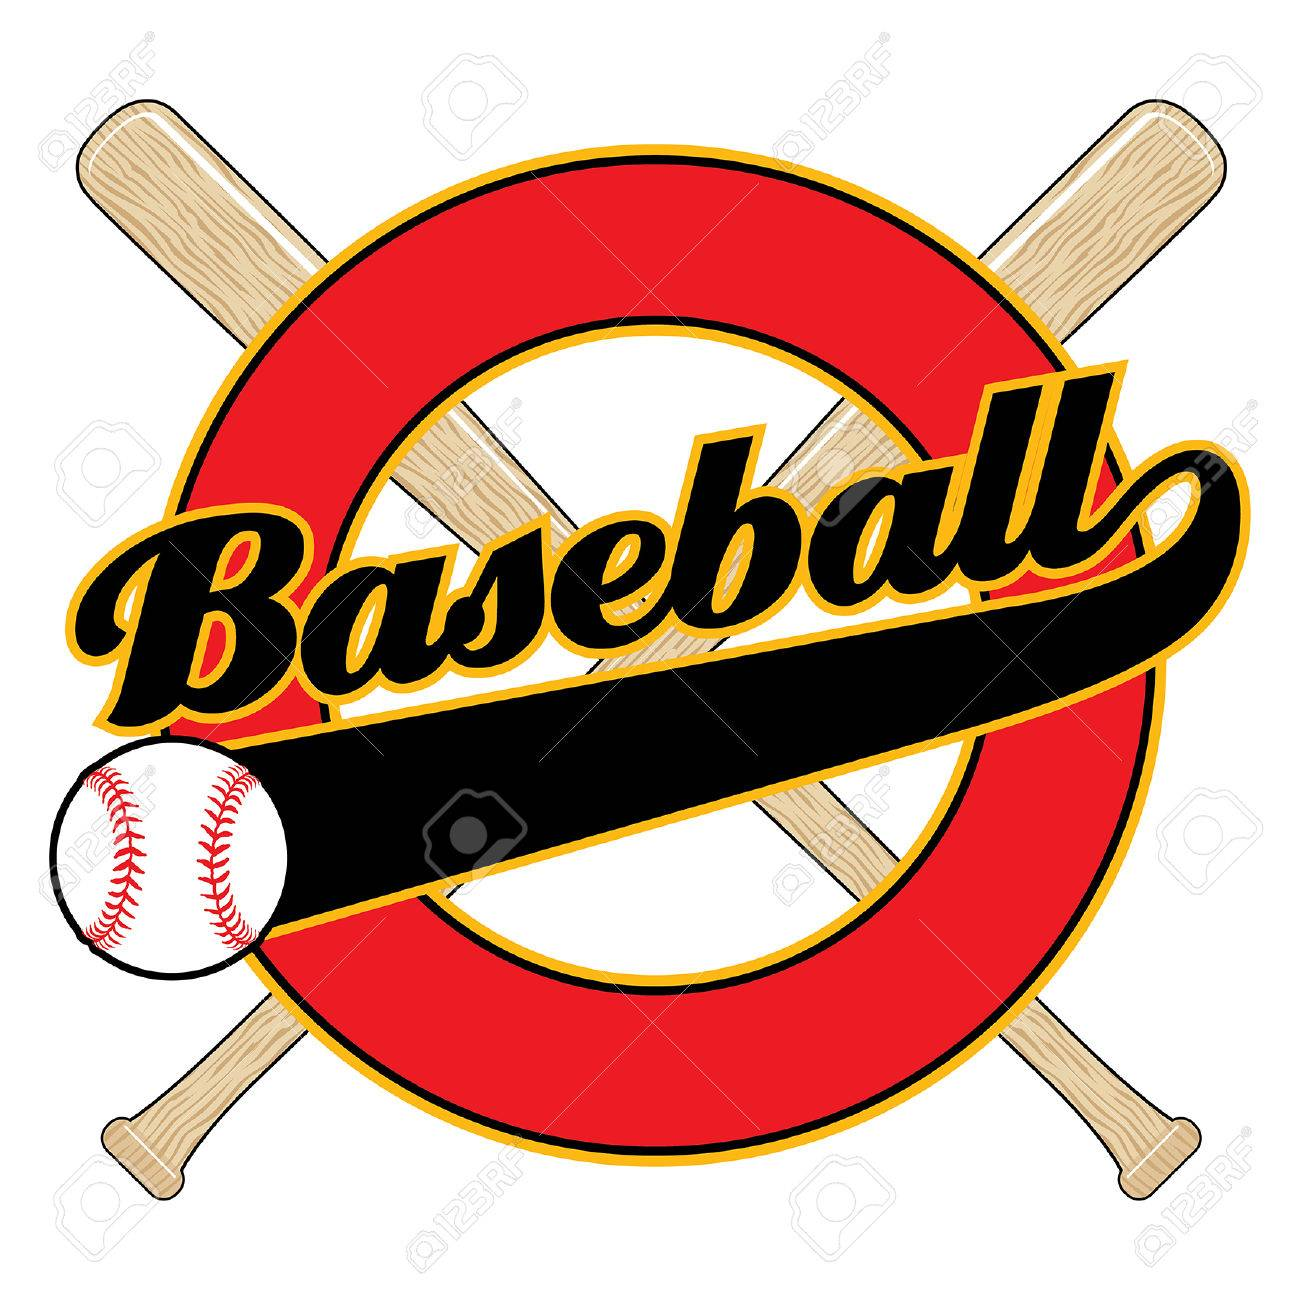 baseball with tail banner is an illustration of a baseball design rh 123rf com Baseball Bat Grip Baseball Bat Grip